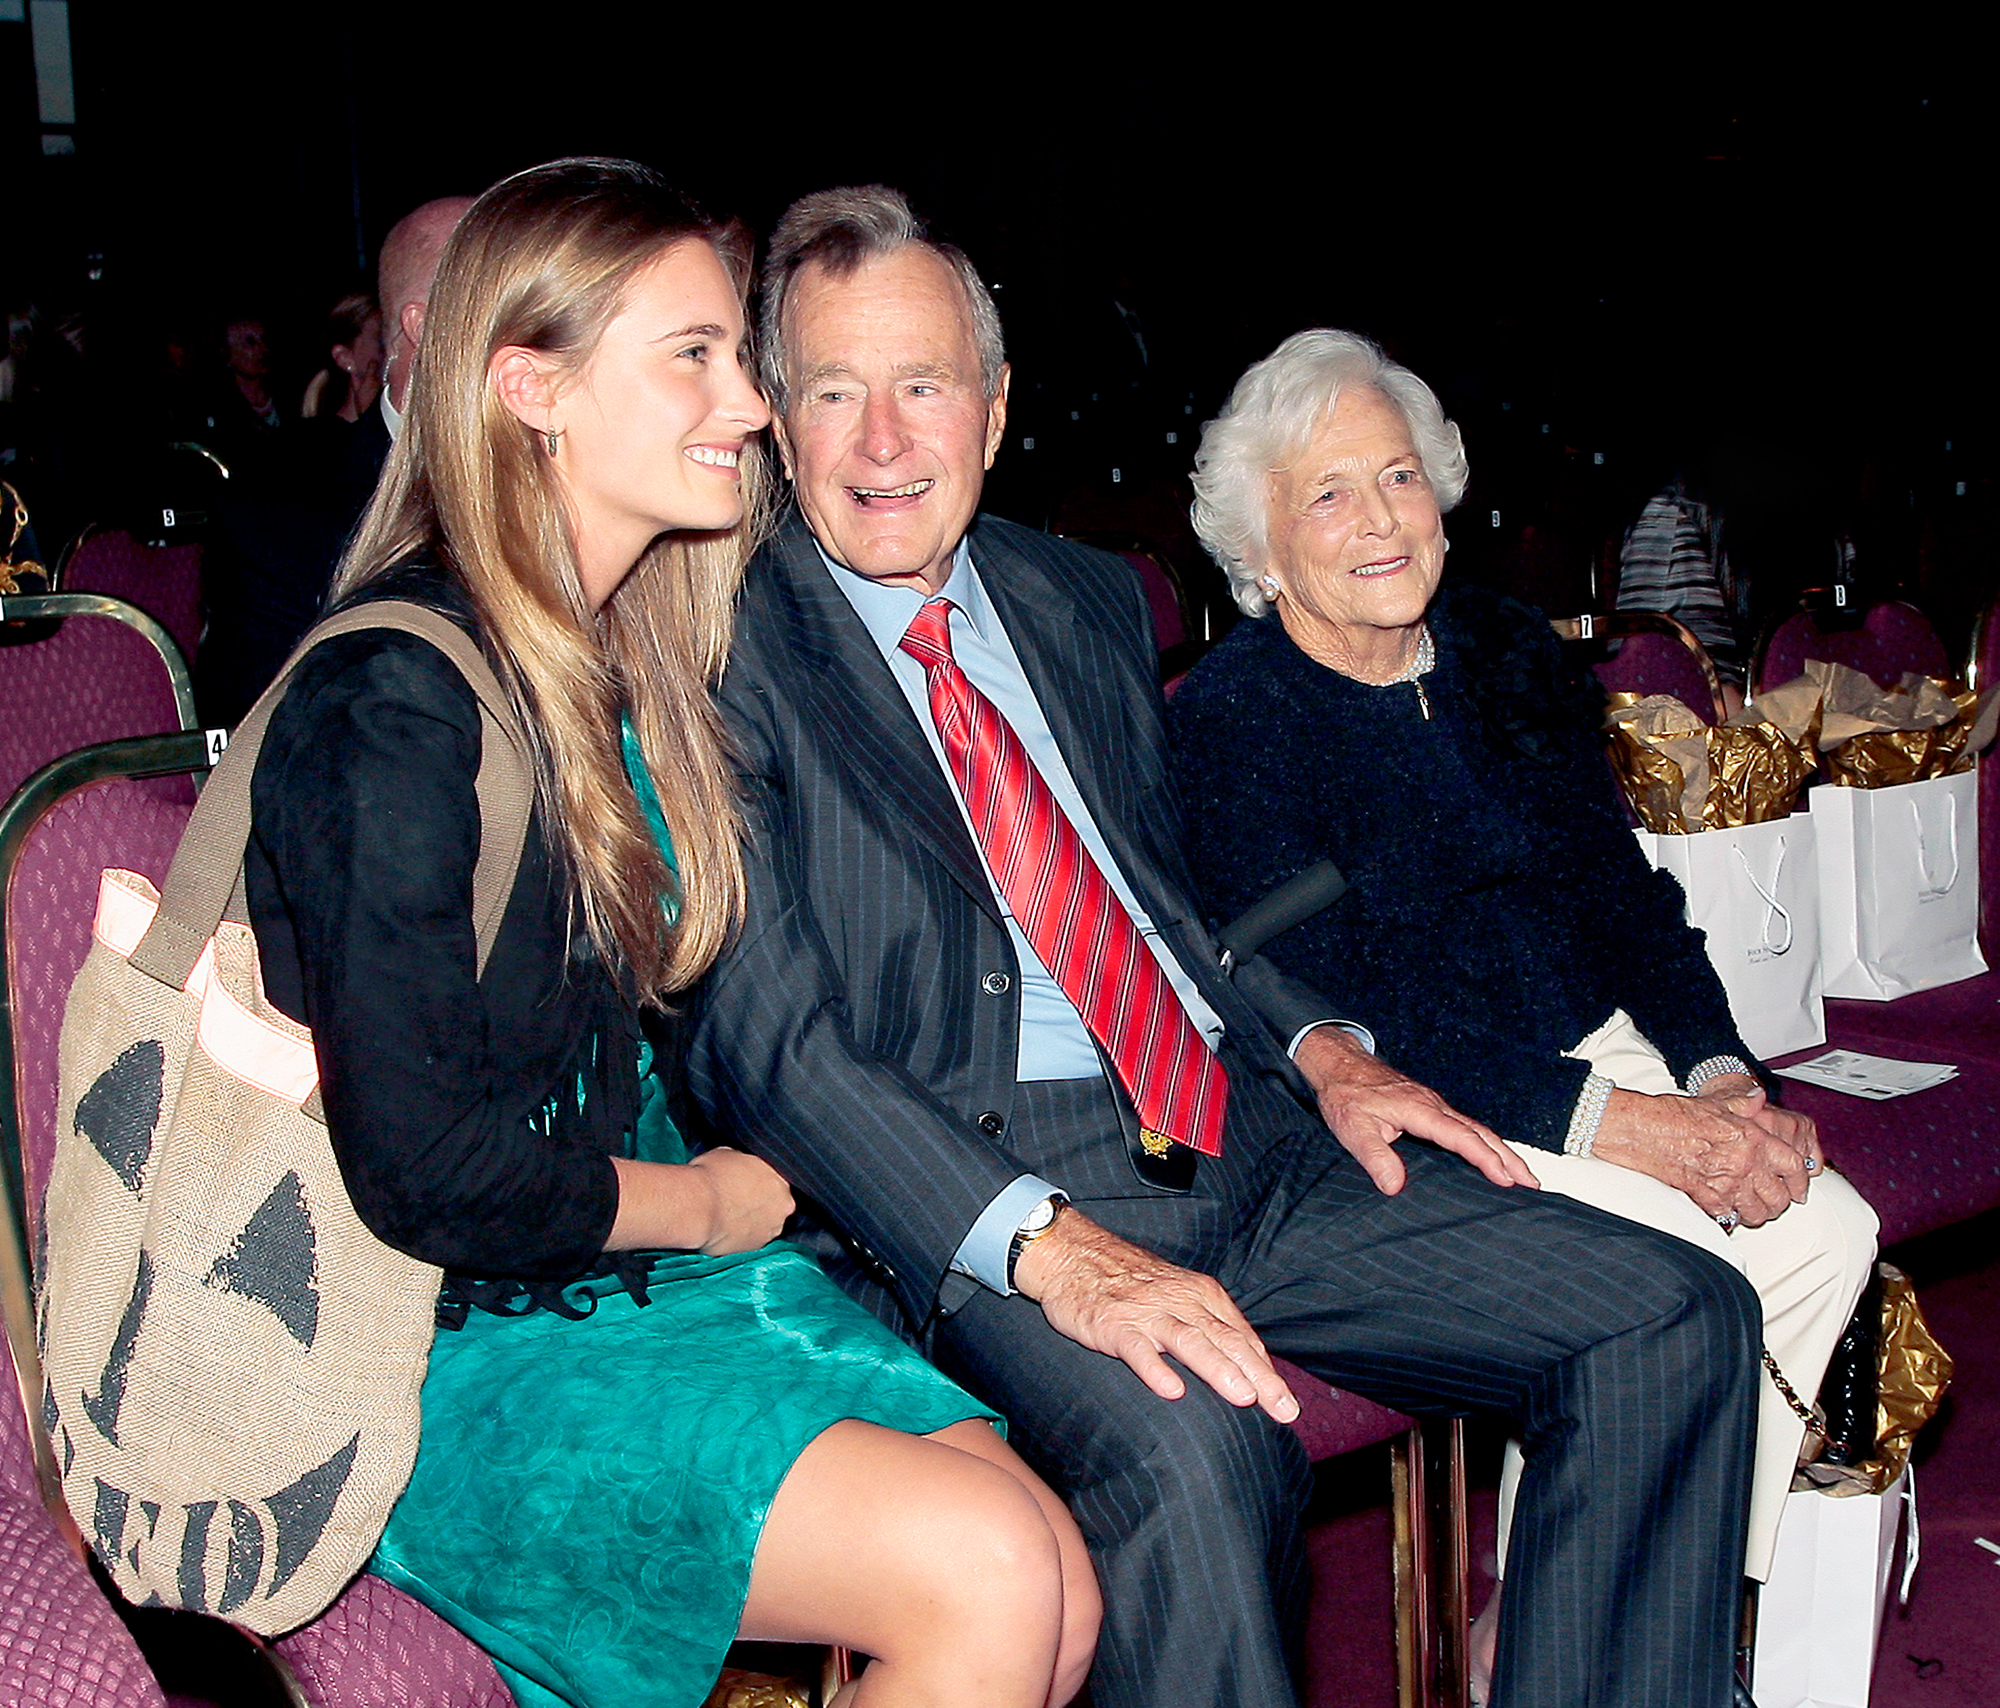 Bush family welcomes baby just days after Barbara Bush's death